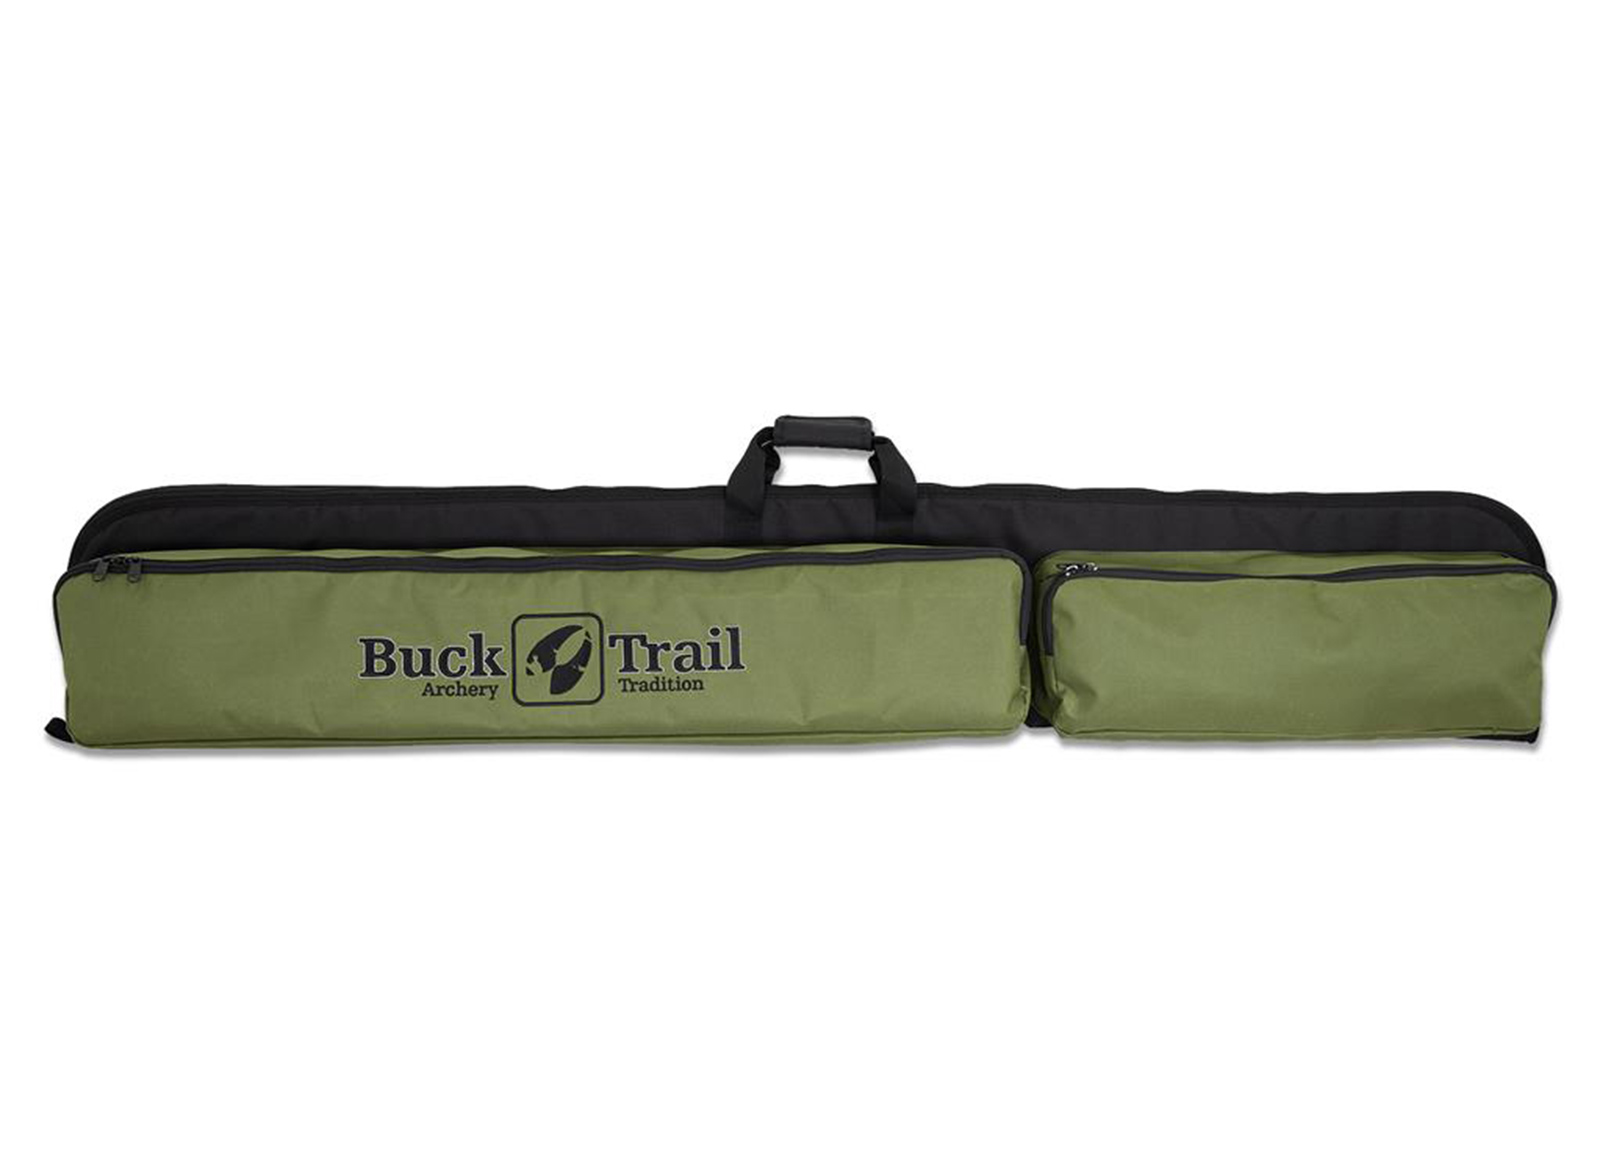 BUCK TRAIL BORSA PER RICURVO 160CM X 27CM BLACK/GREEN